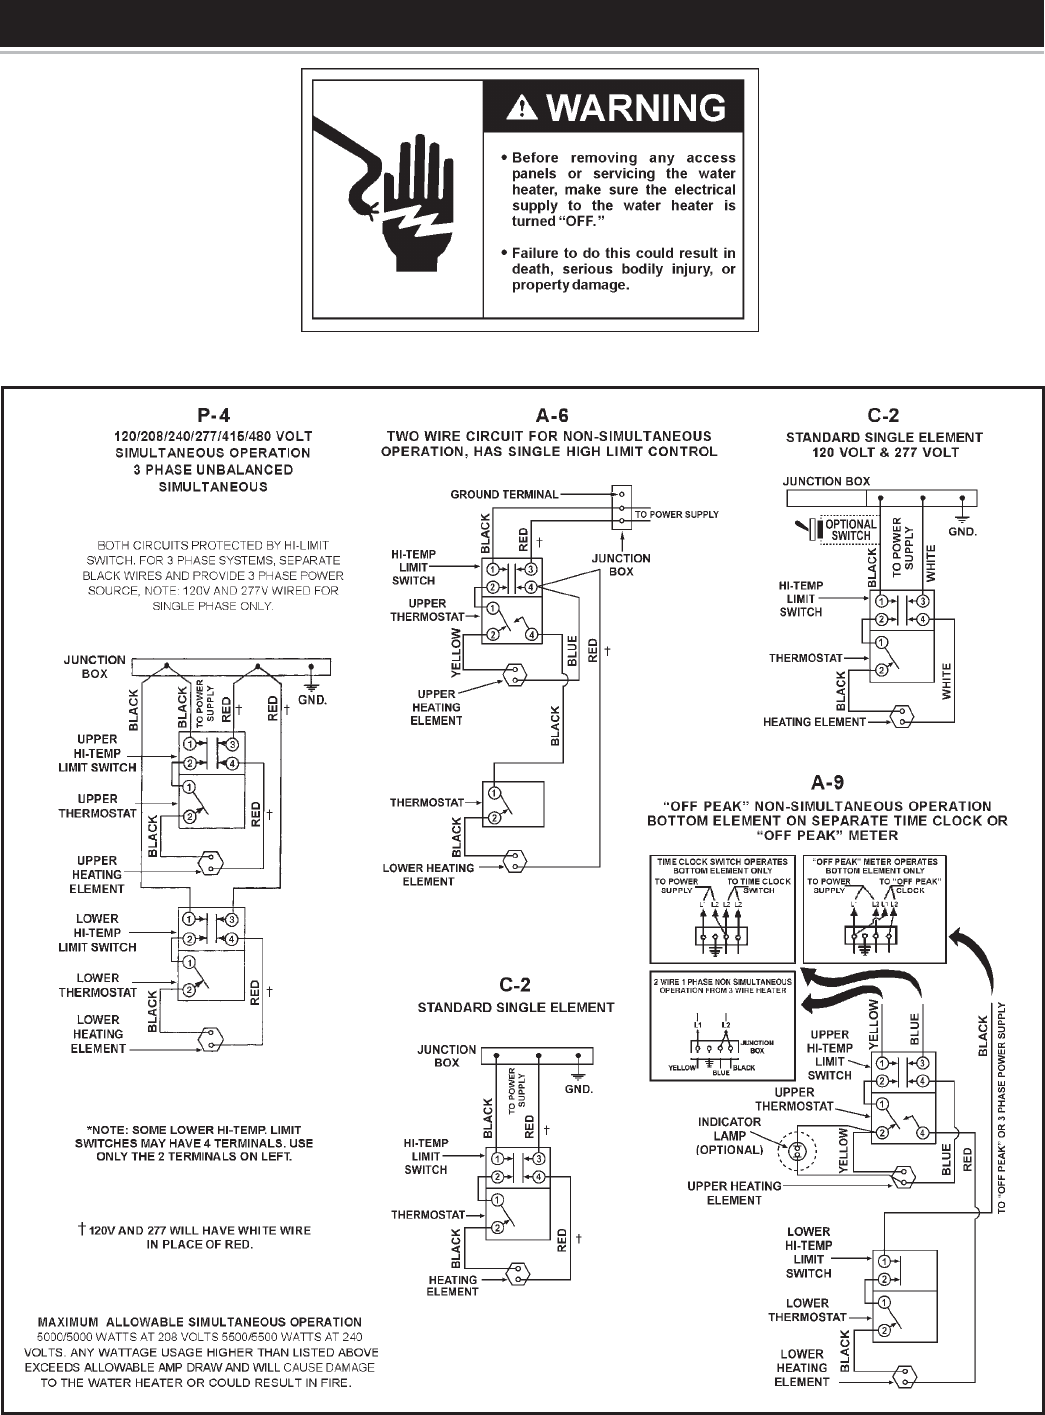 3509a988 74d5 459b aaef 95ebb87e3bd4 bgb ao smith wiring diagram 3 phase tankless water heater wiring diagram at reclaimingppi.co